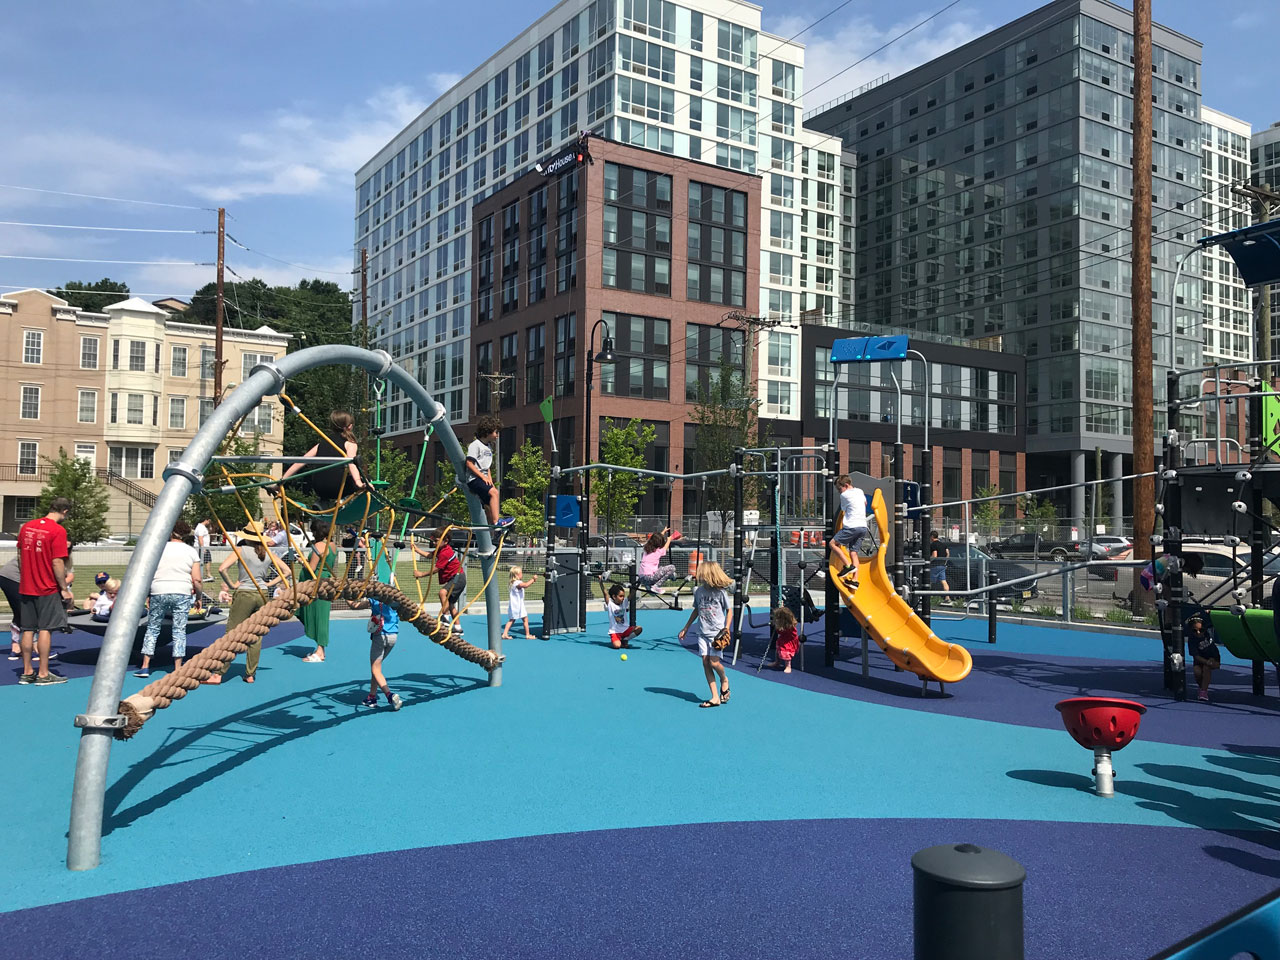 New Park At 7th And Jackson Streets Hoboken 1